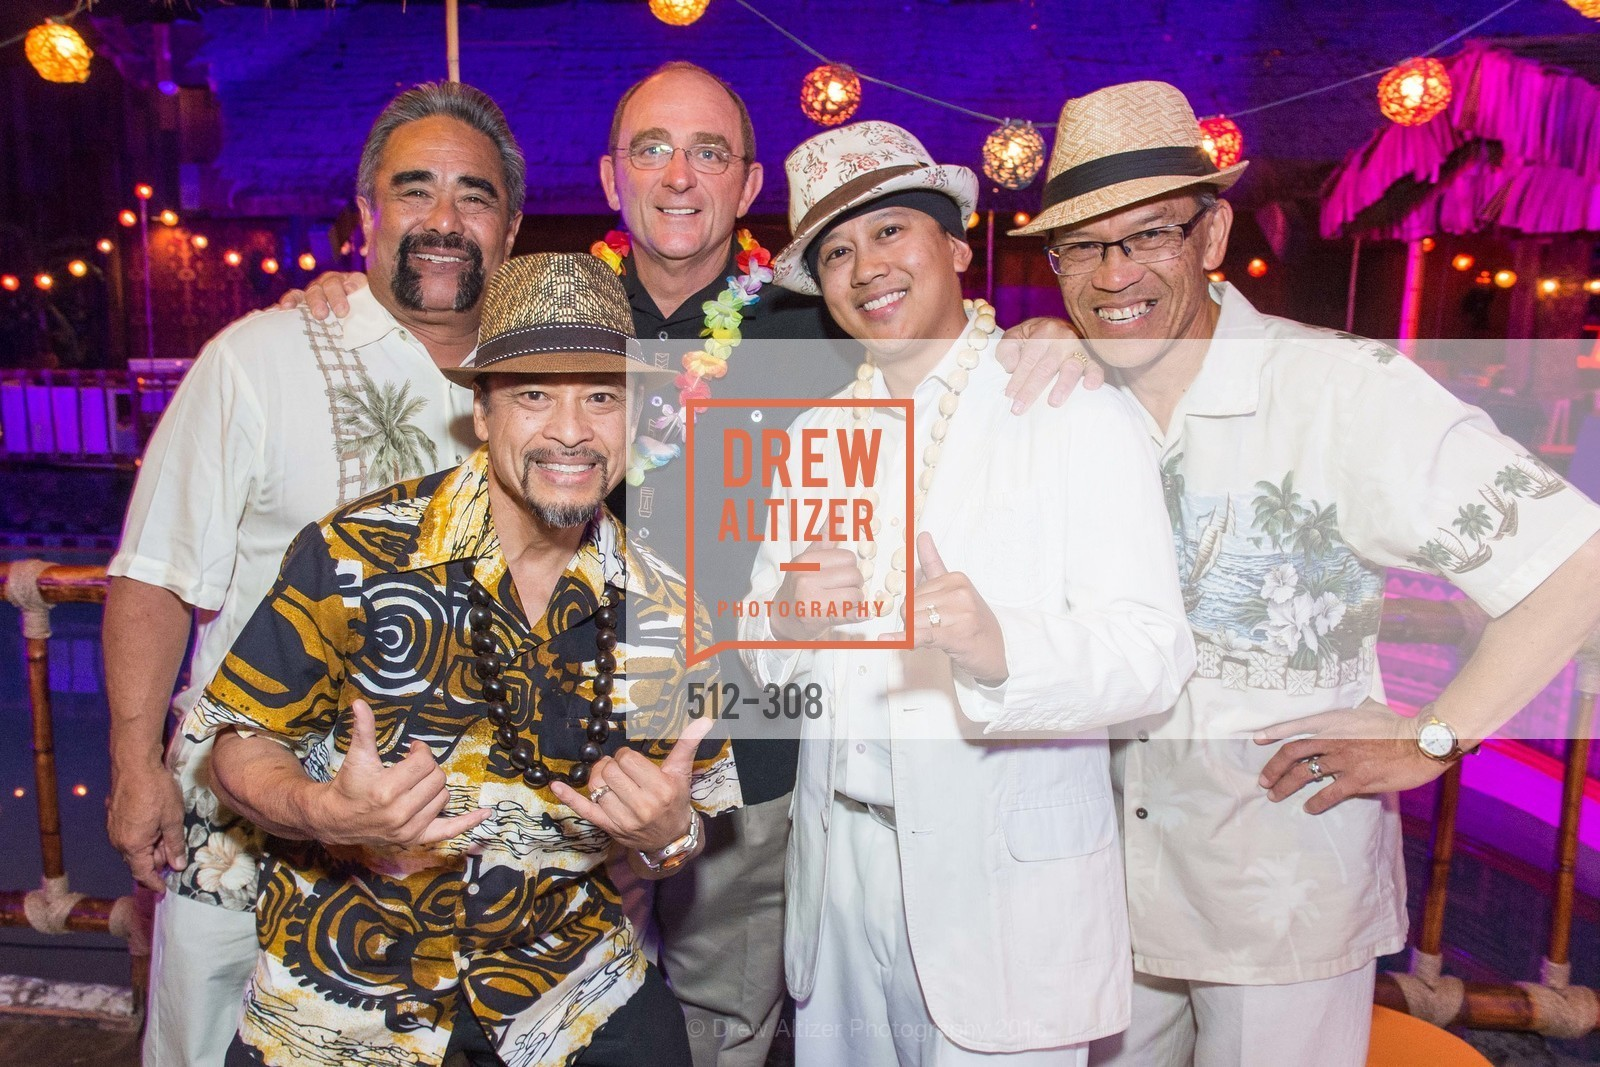 Vito Medina, Alan Revelo, Tom Klein, CJ Simbre, Dean Revelo, Tonga Room & Hurricane Bar Celebrates 70 Years of Tiki Glory, Fairmont, September 23rd, 2015,Drew Altizer, Drew Altizer Photography, full-service agency, private events, San Francisco photographer, photographer california